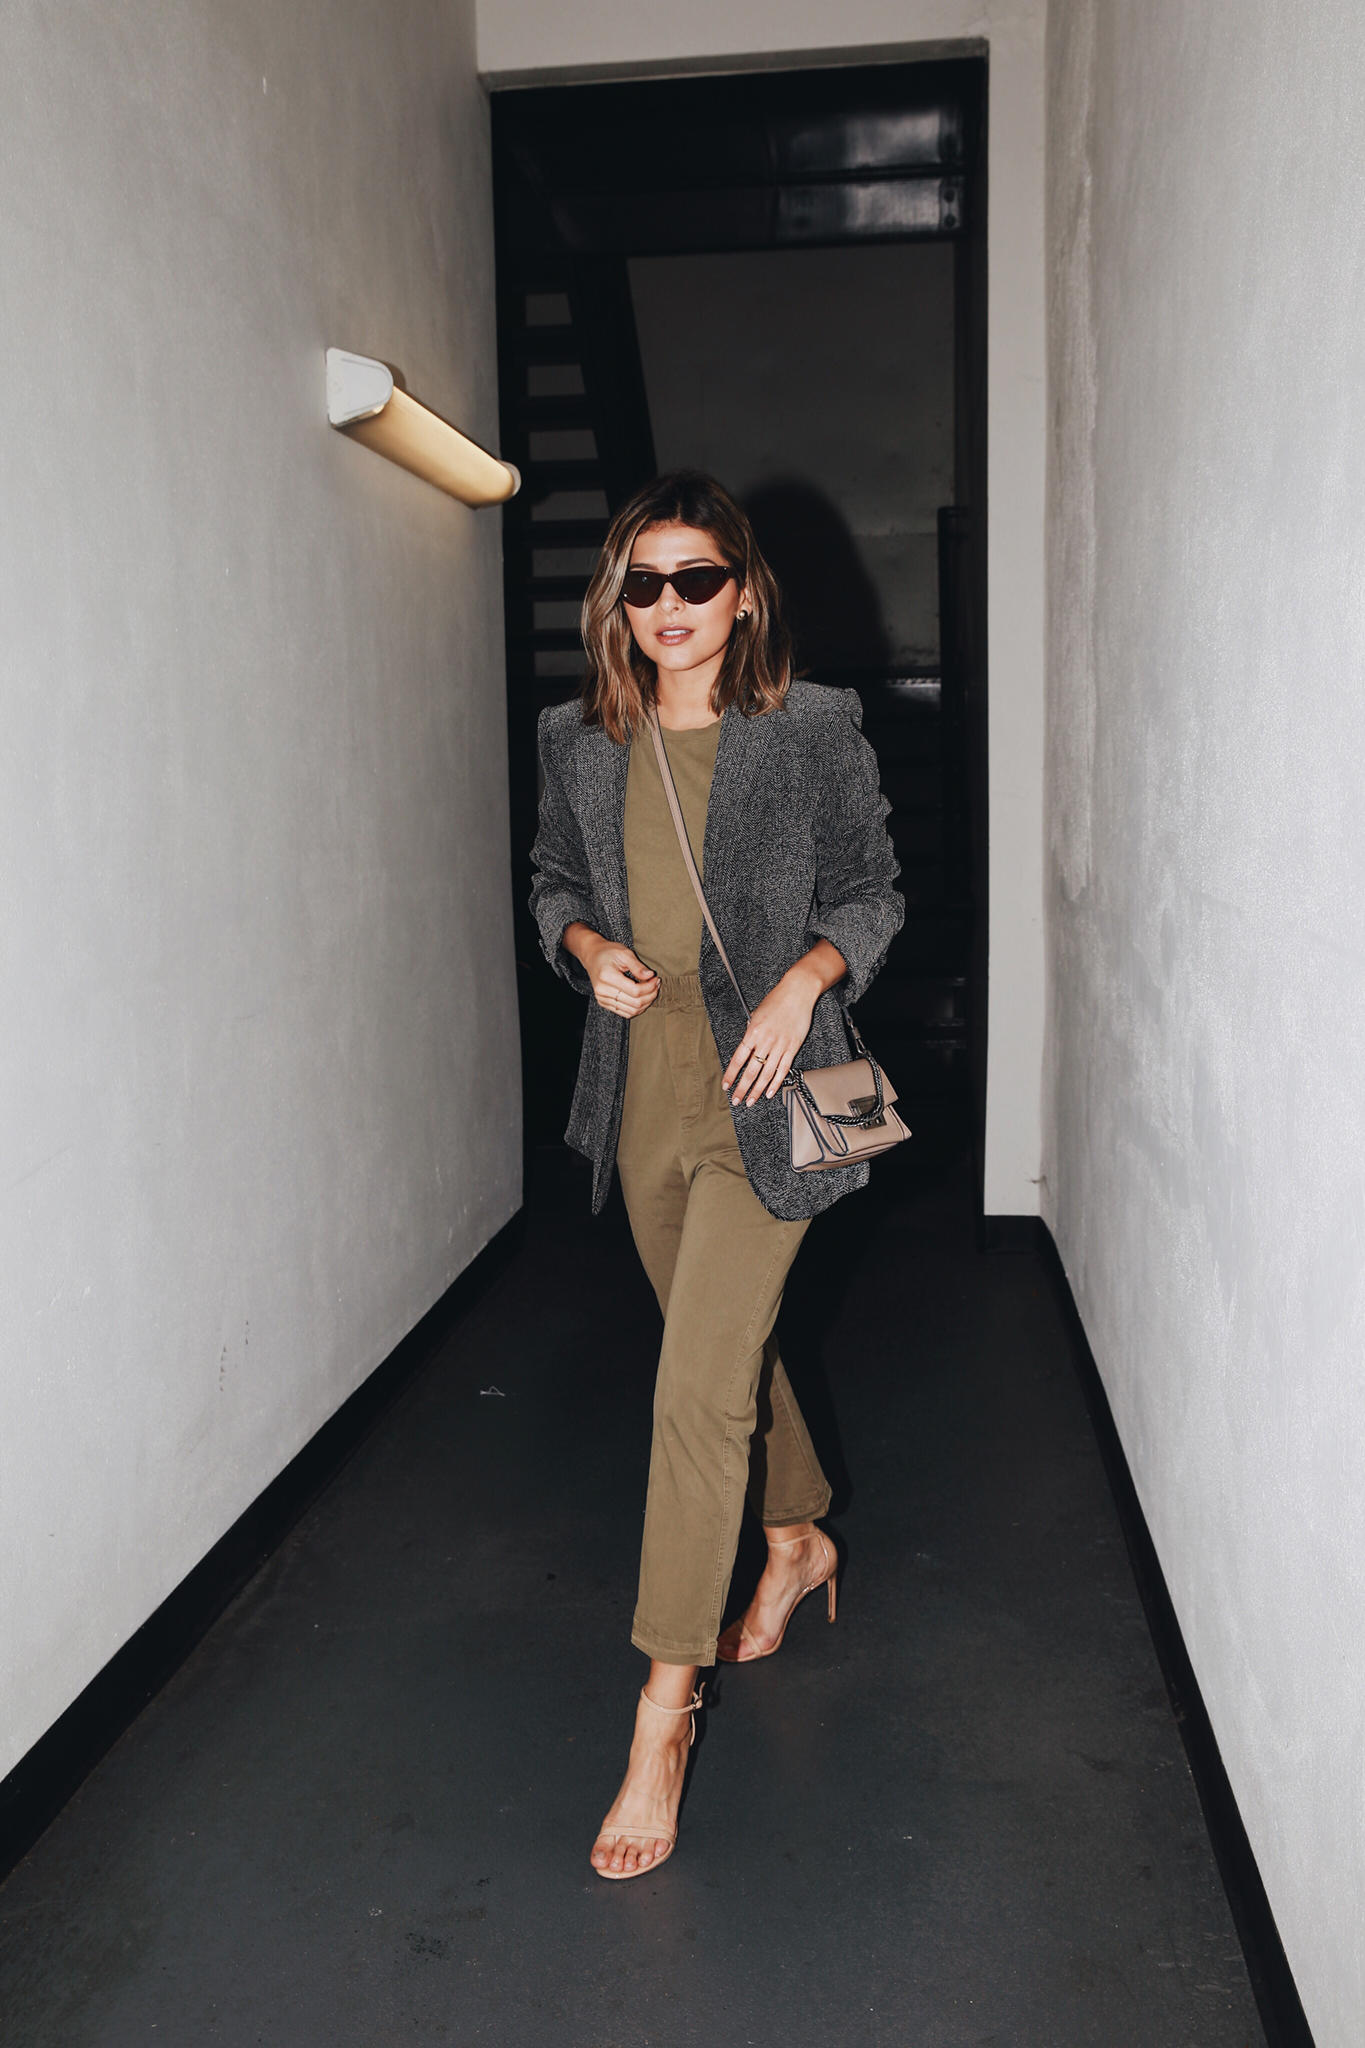 How to Wear the Cargo Pants Trend by Pam Hetlinger   TheGirlFromPanama.com   Givenchy mini bag, green cargo pants, cargo pants trend